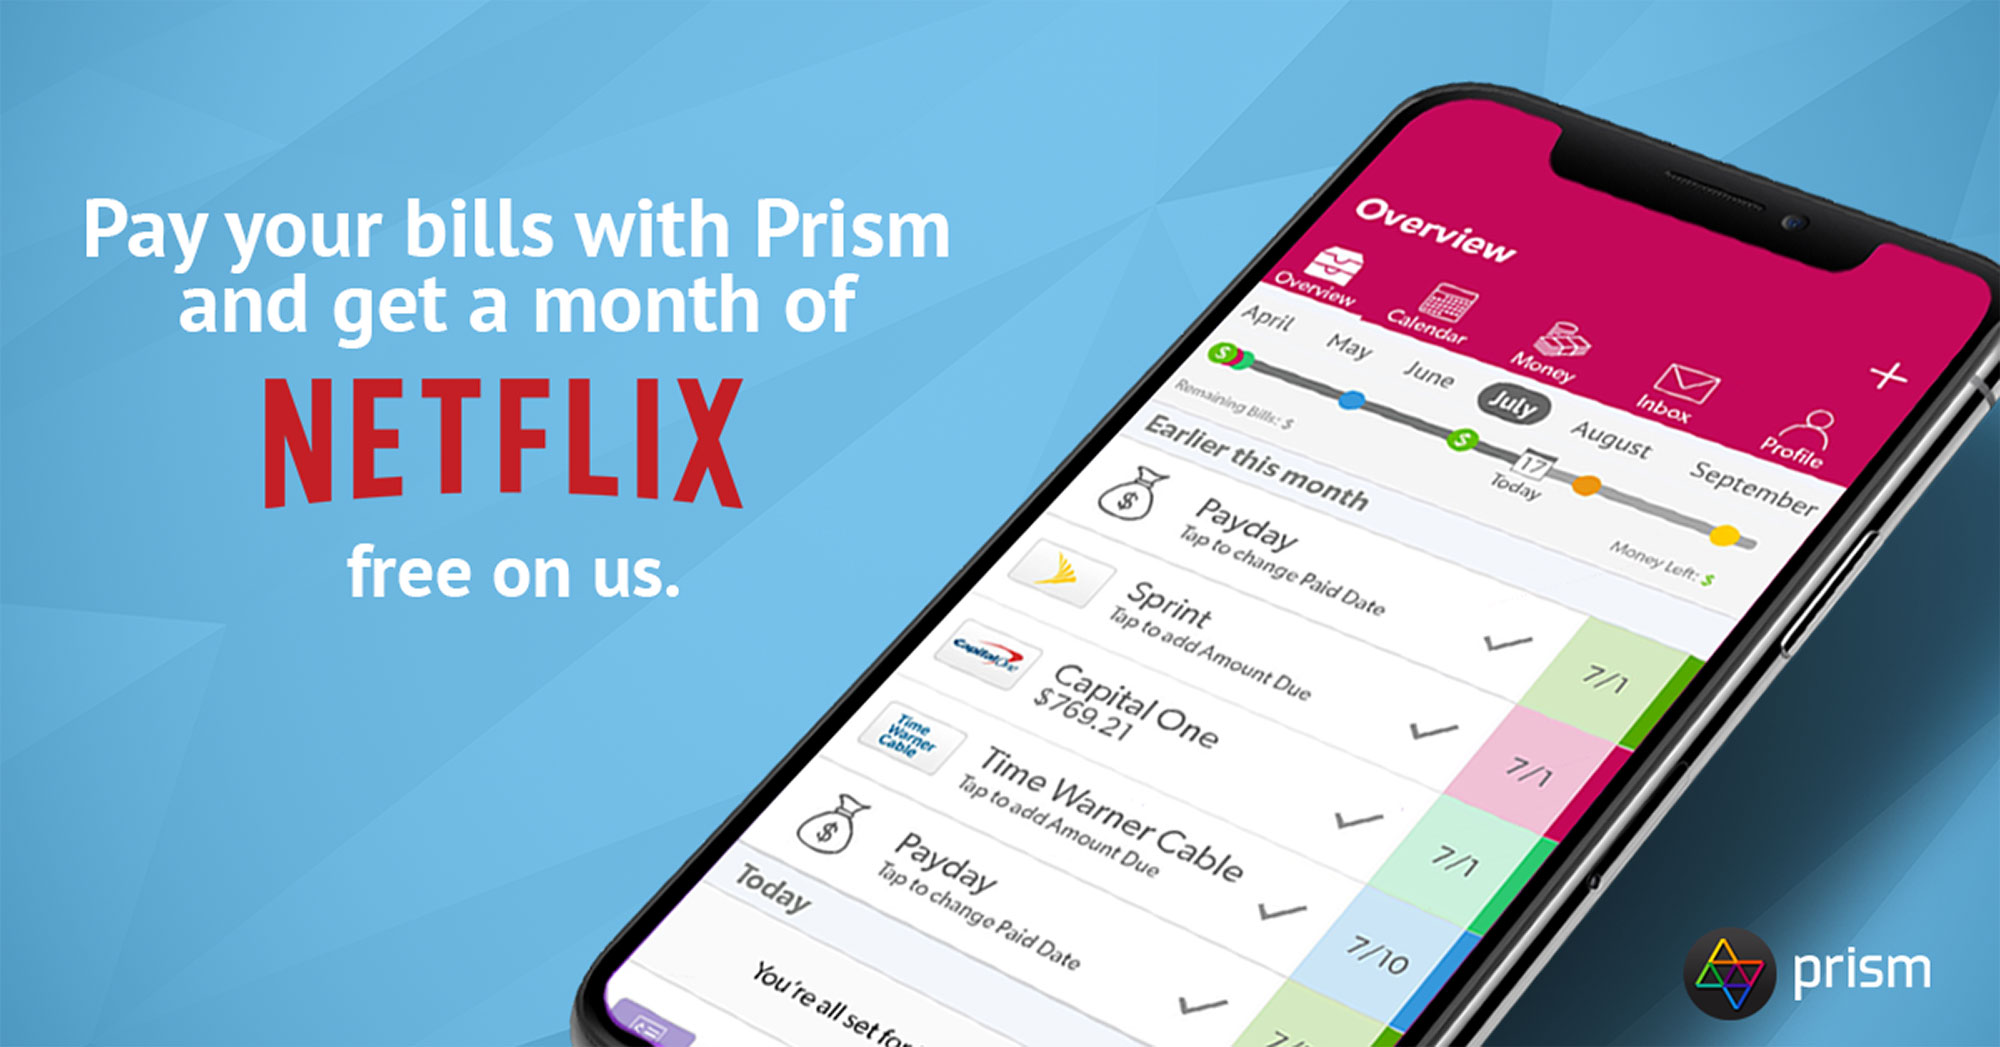 Get a free month of Netflix on us! • Prism: Help & Support